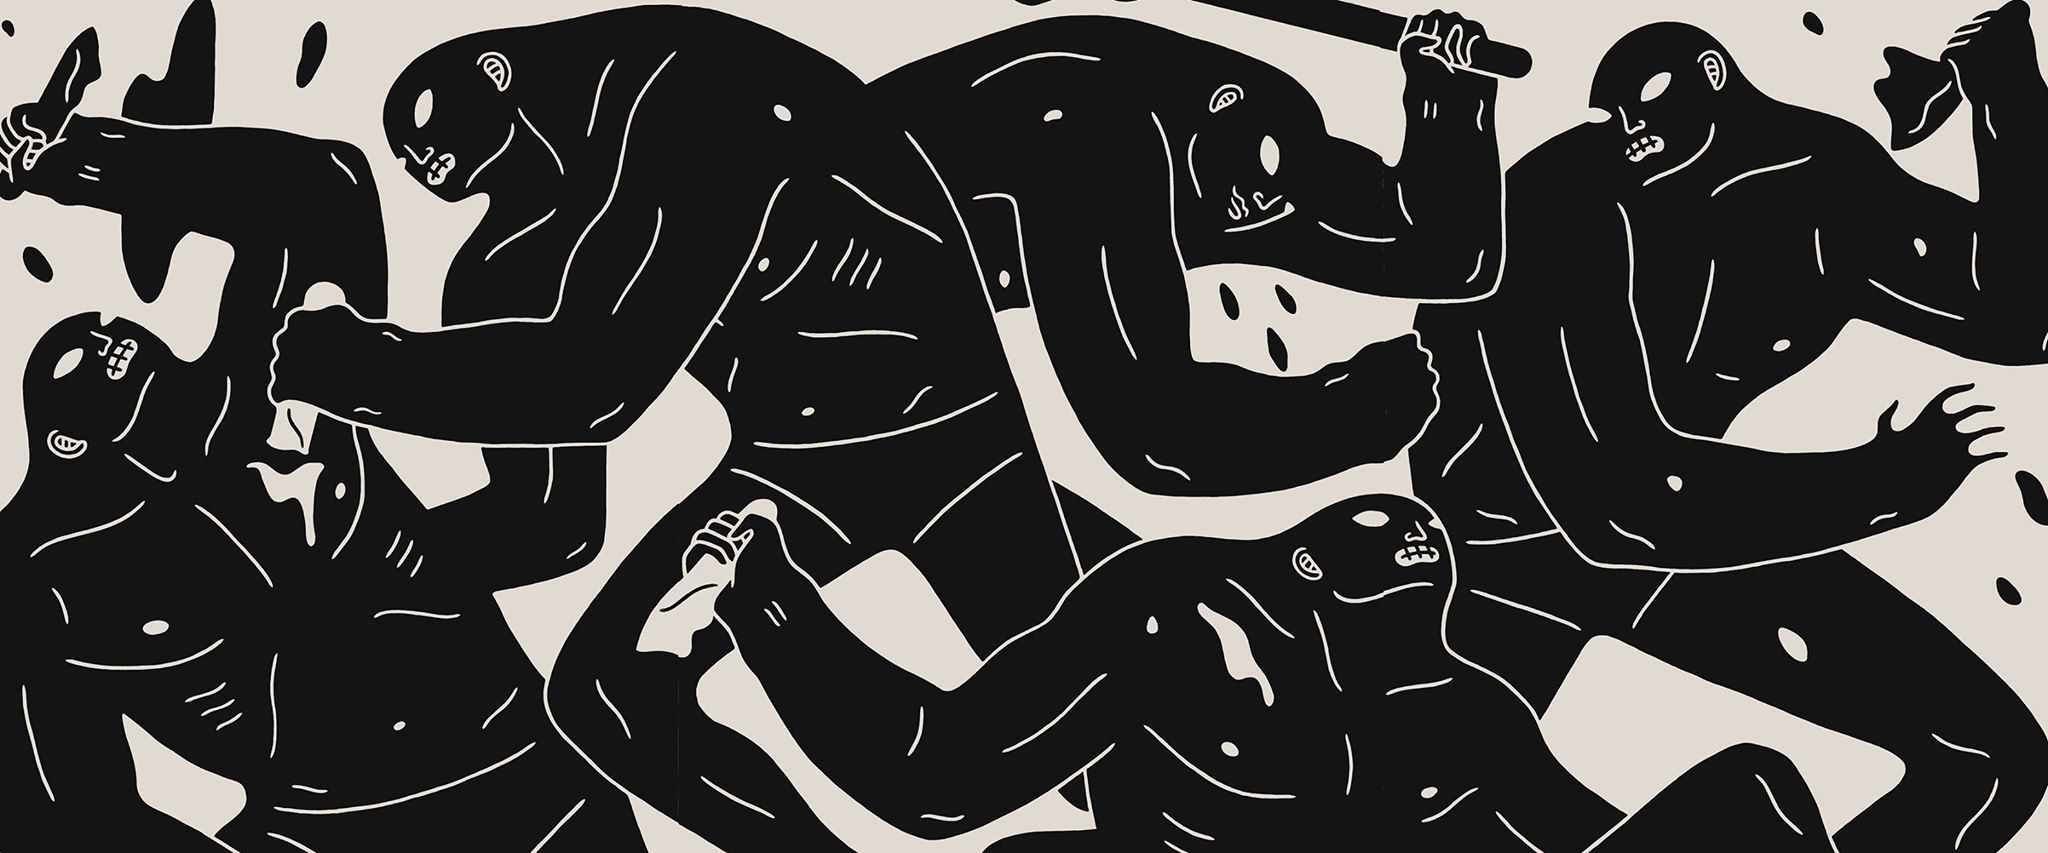 cleon-peterson-poison-at-library-street-collective-recap-23